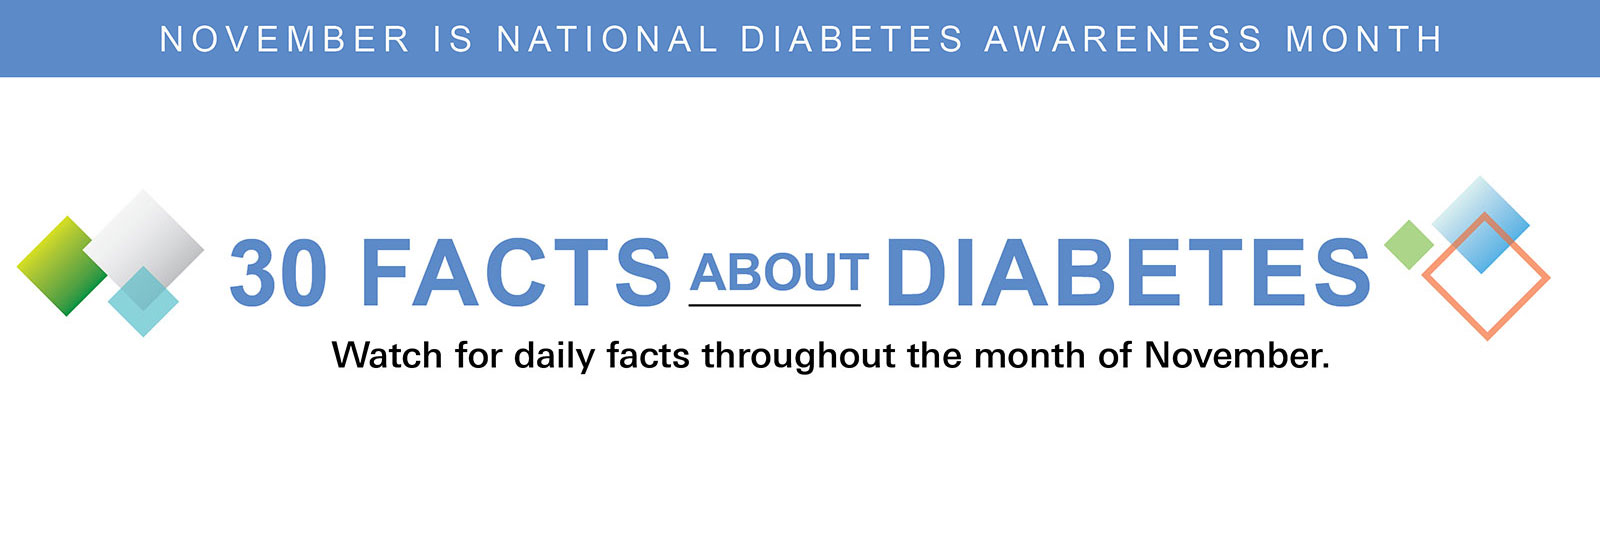 30 Facts About Diabetes presented by ARKRAY USA